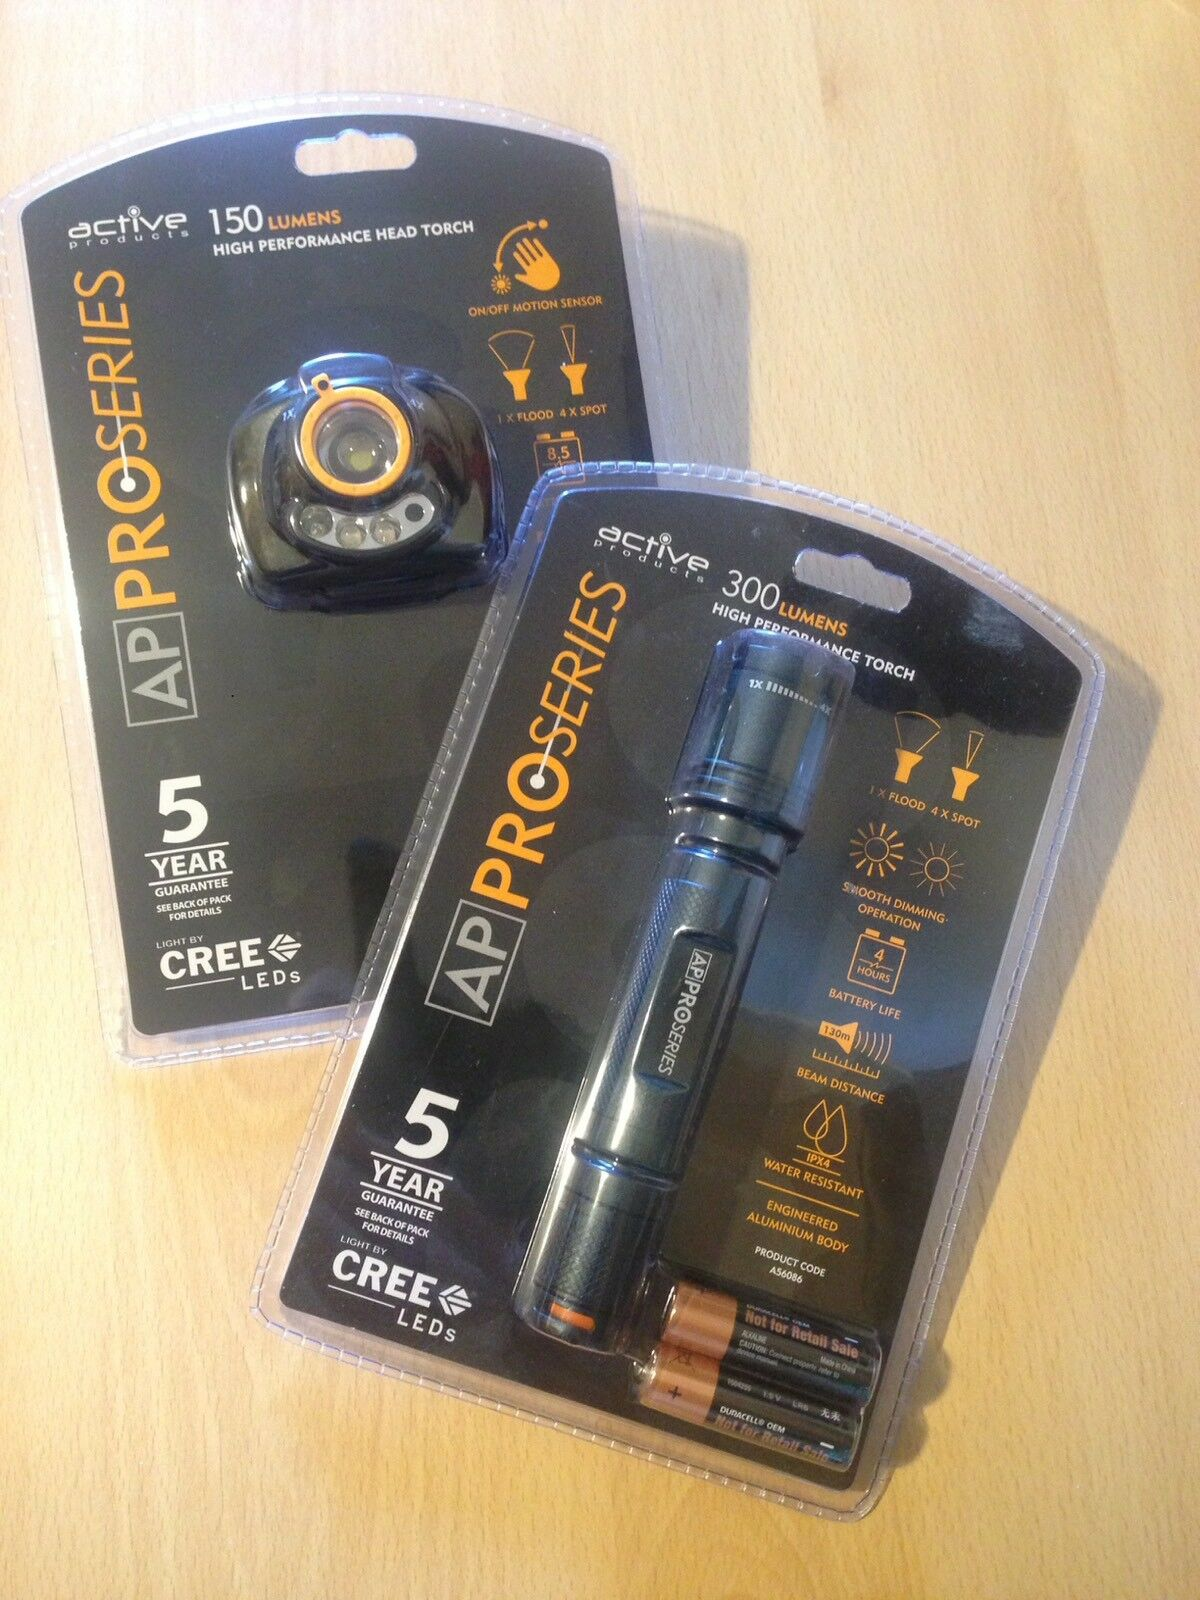 AP ProSeries 300 Lumens Torch & Head Torch (Suit Electrician)